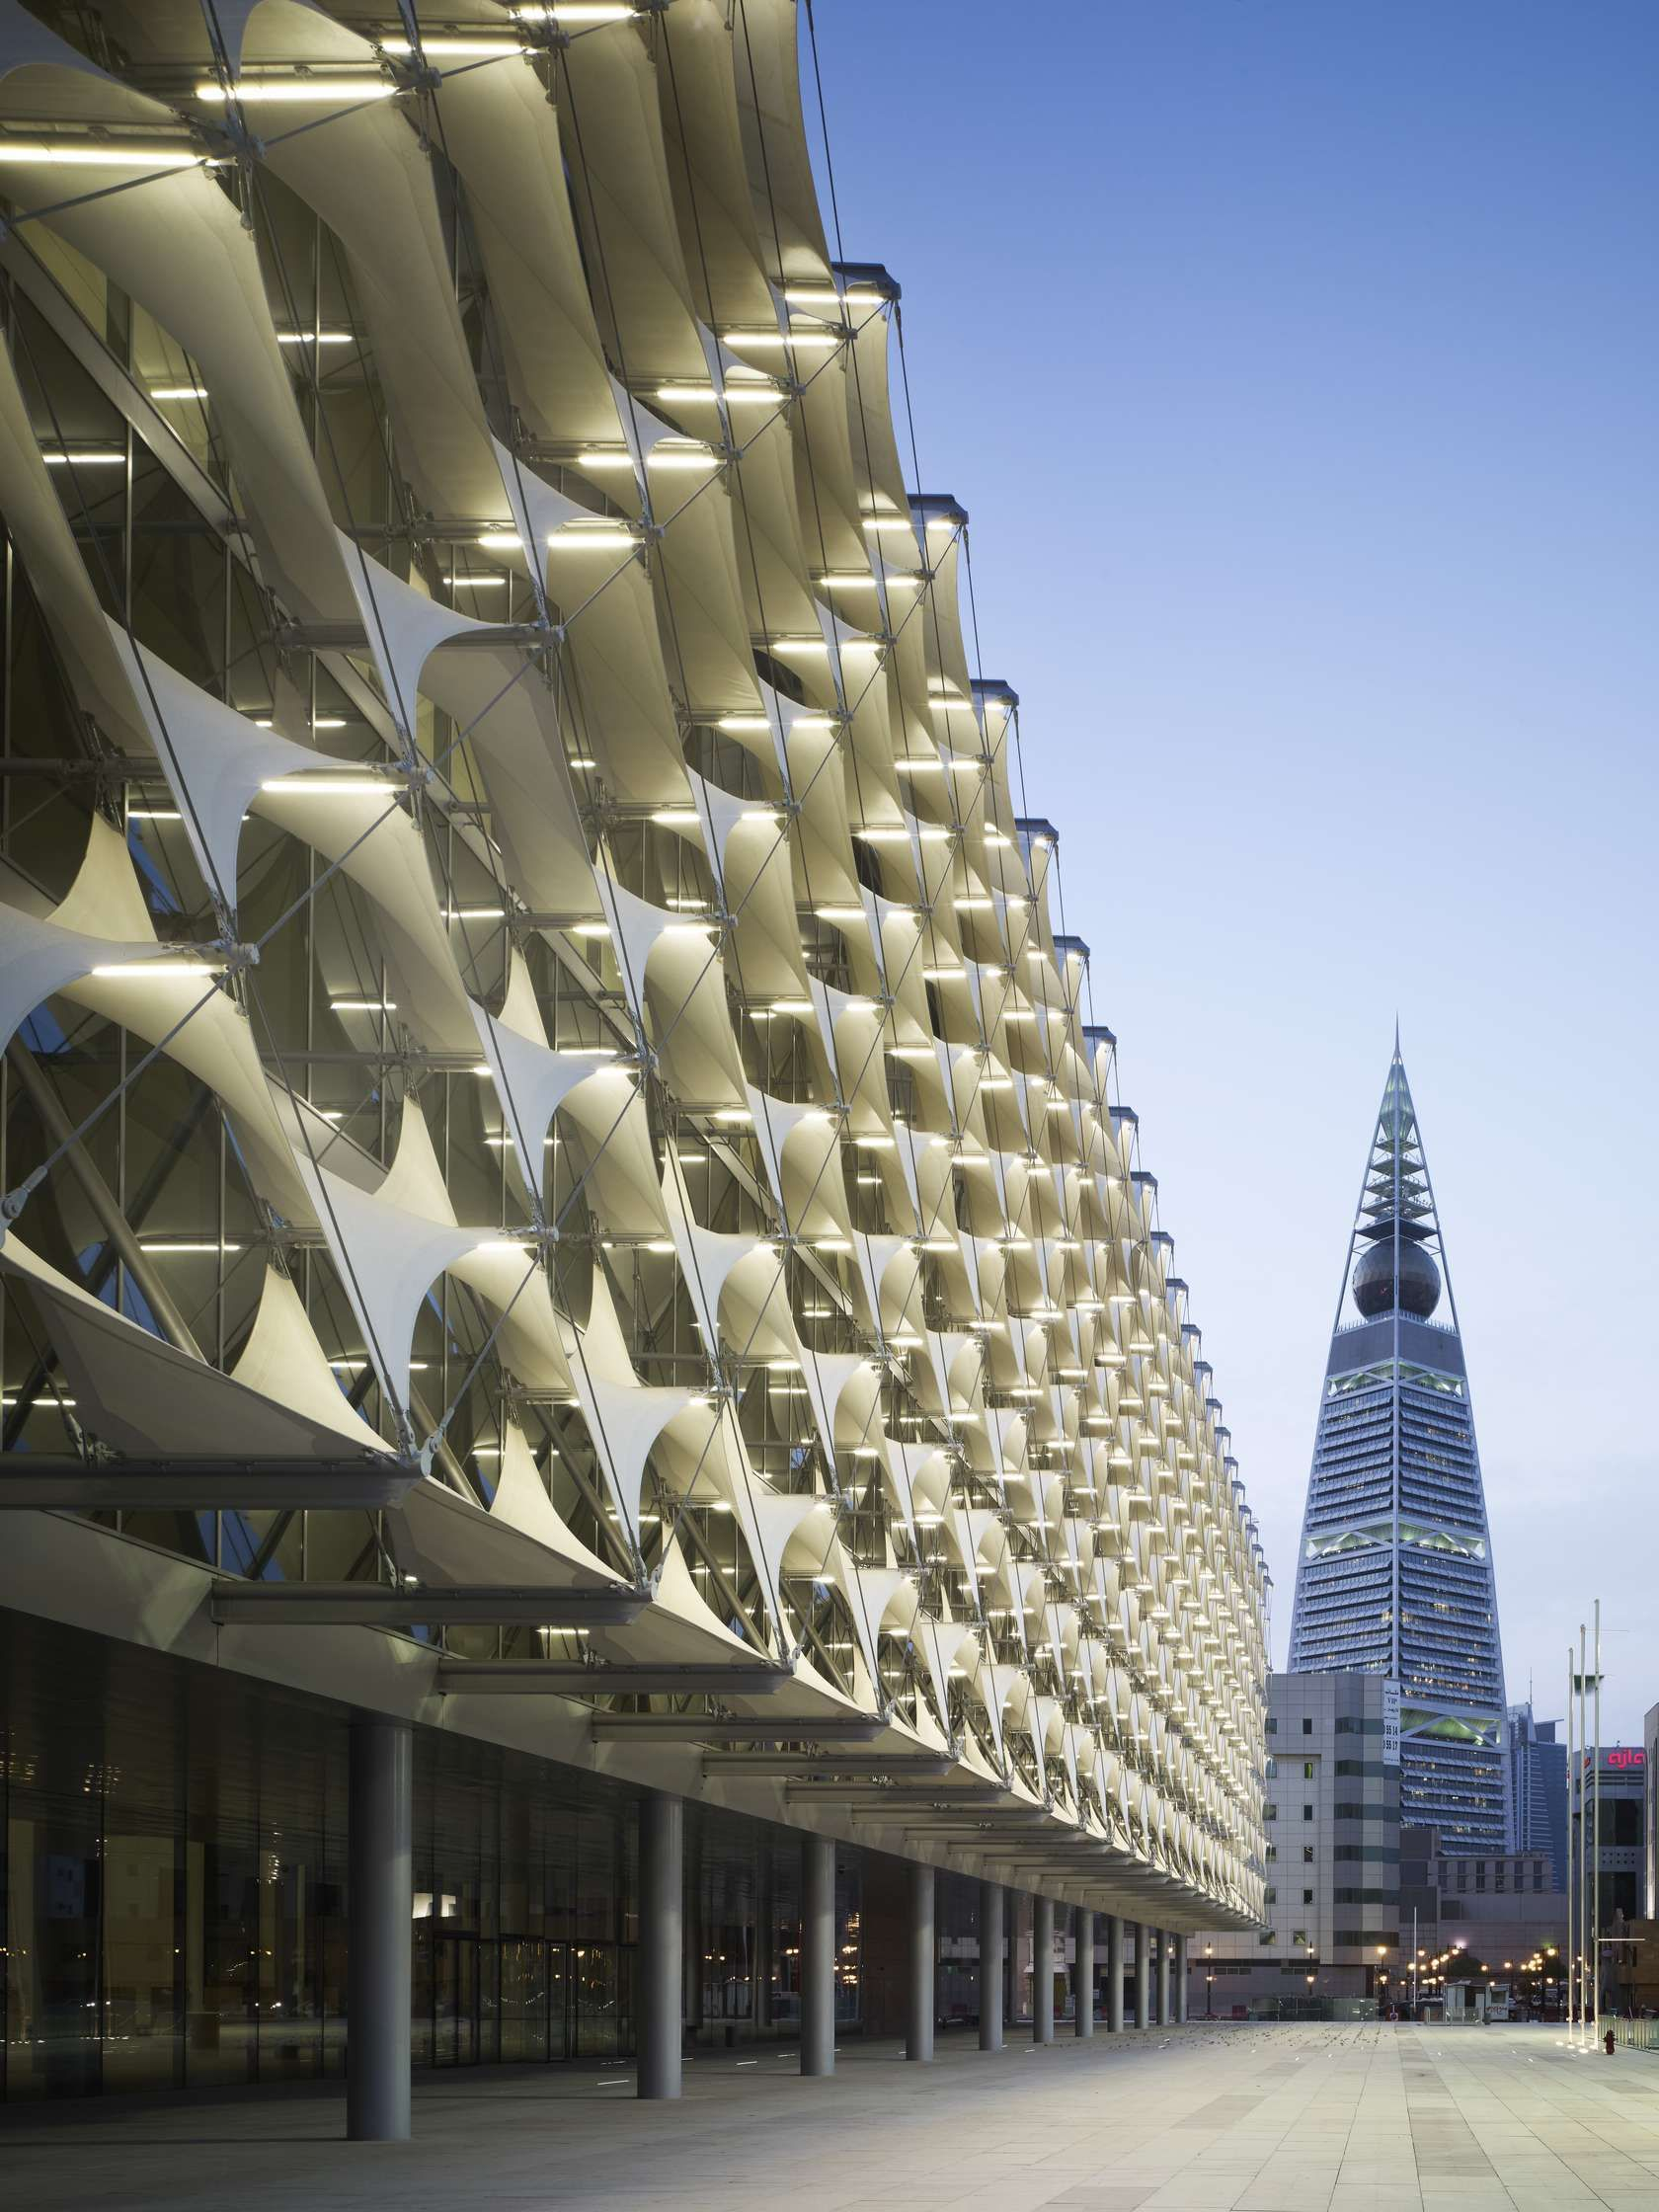 Building Shade: Time to Flex Your Creative Muscles With Performance Fabrics - Architizer